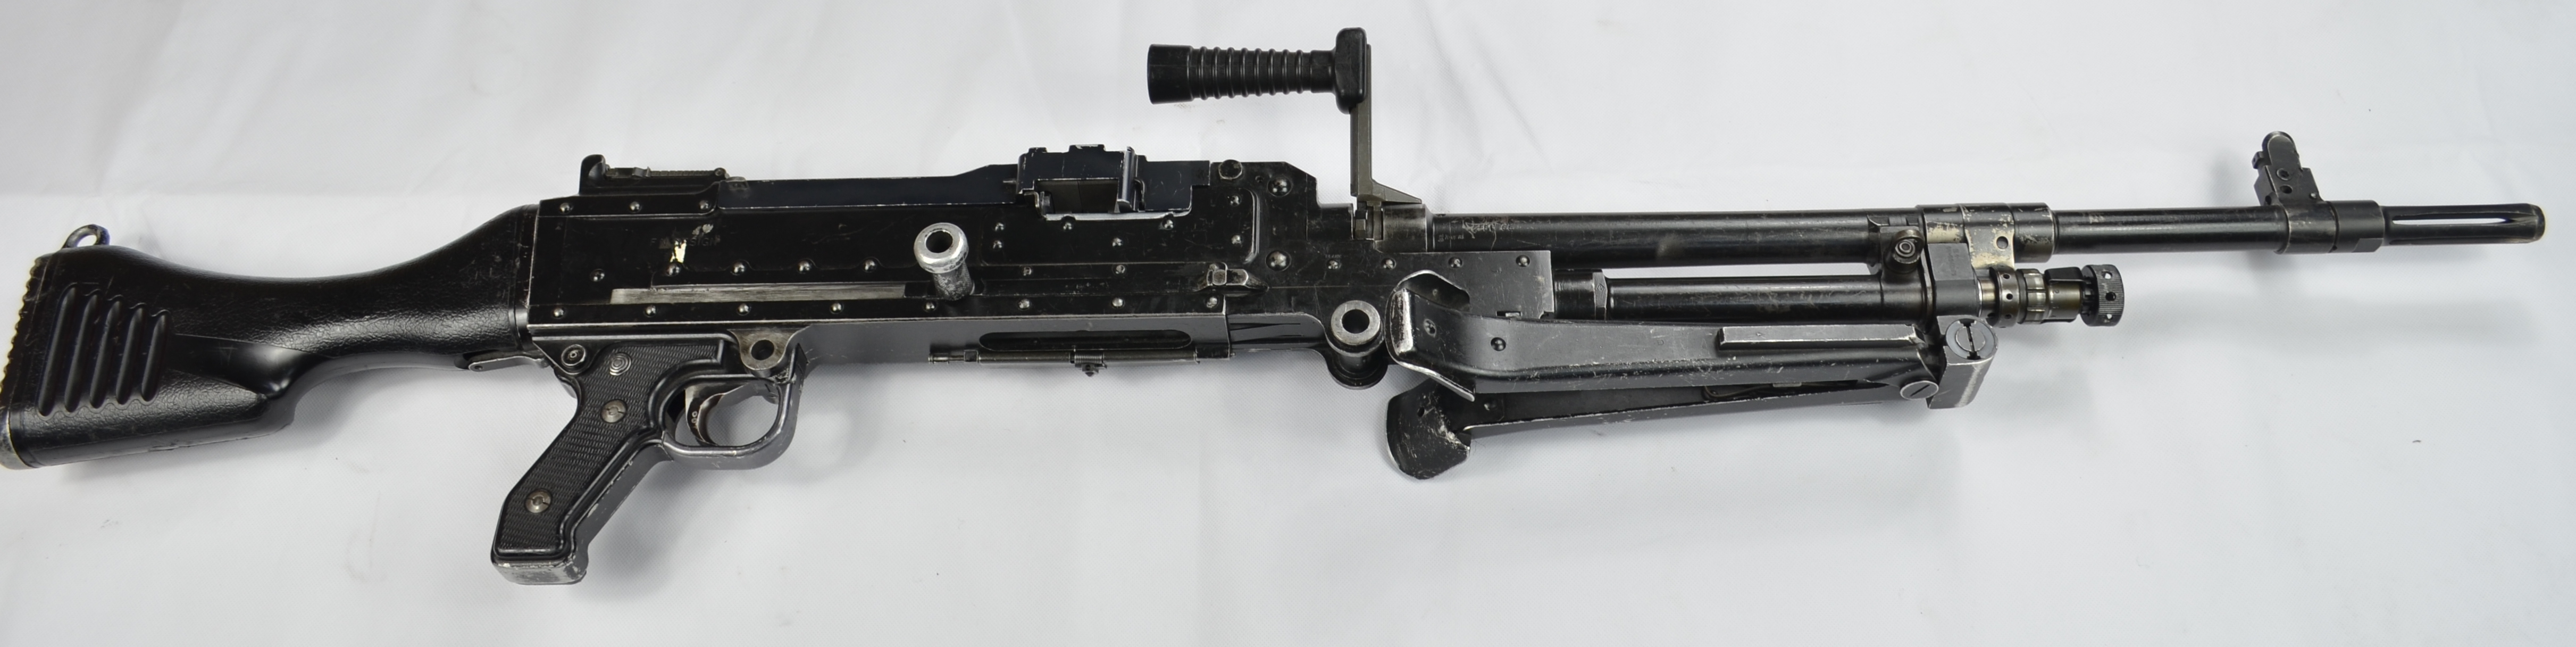 Enfield GPMG